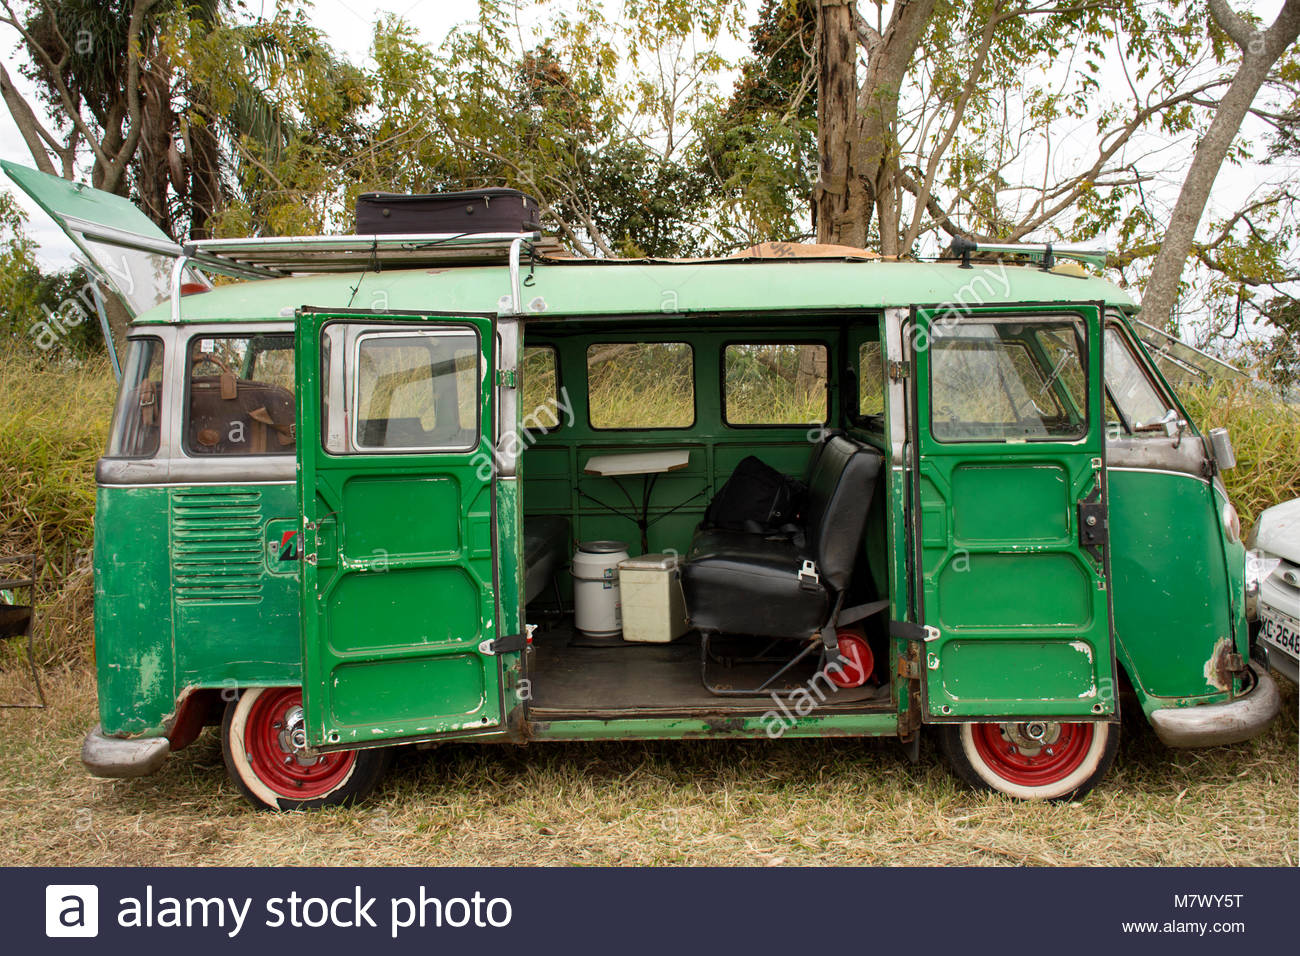 7798b08c2c3cf9 Very old green Volkswagen Kombi  Camper from a traveller - Stock Image